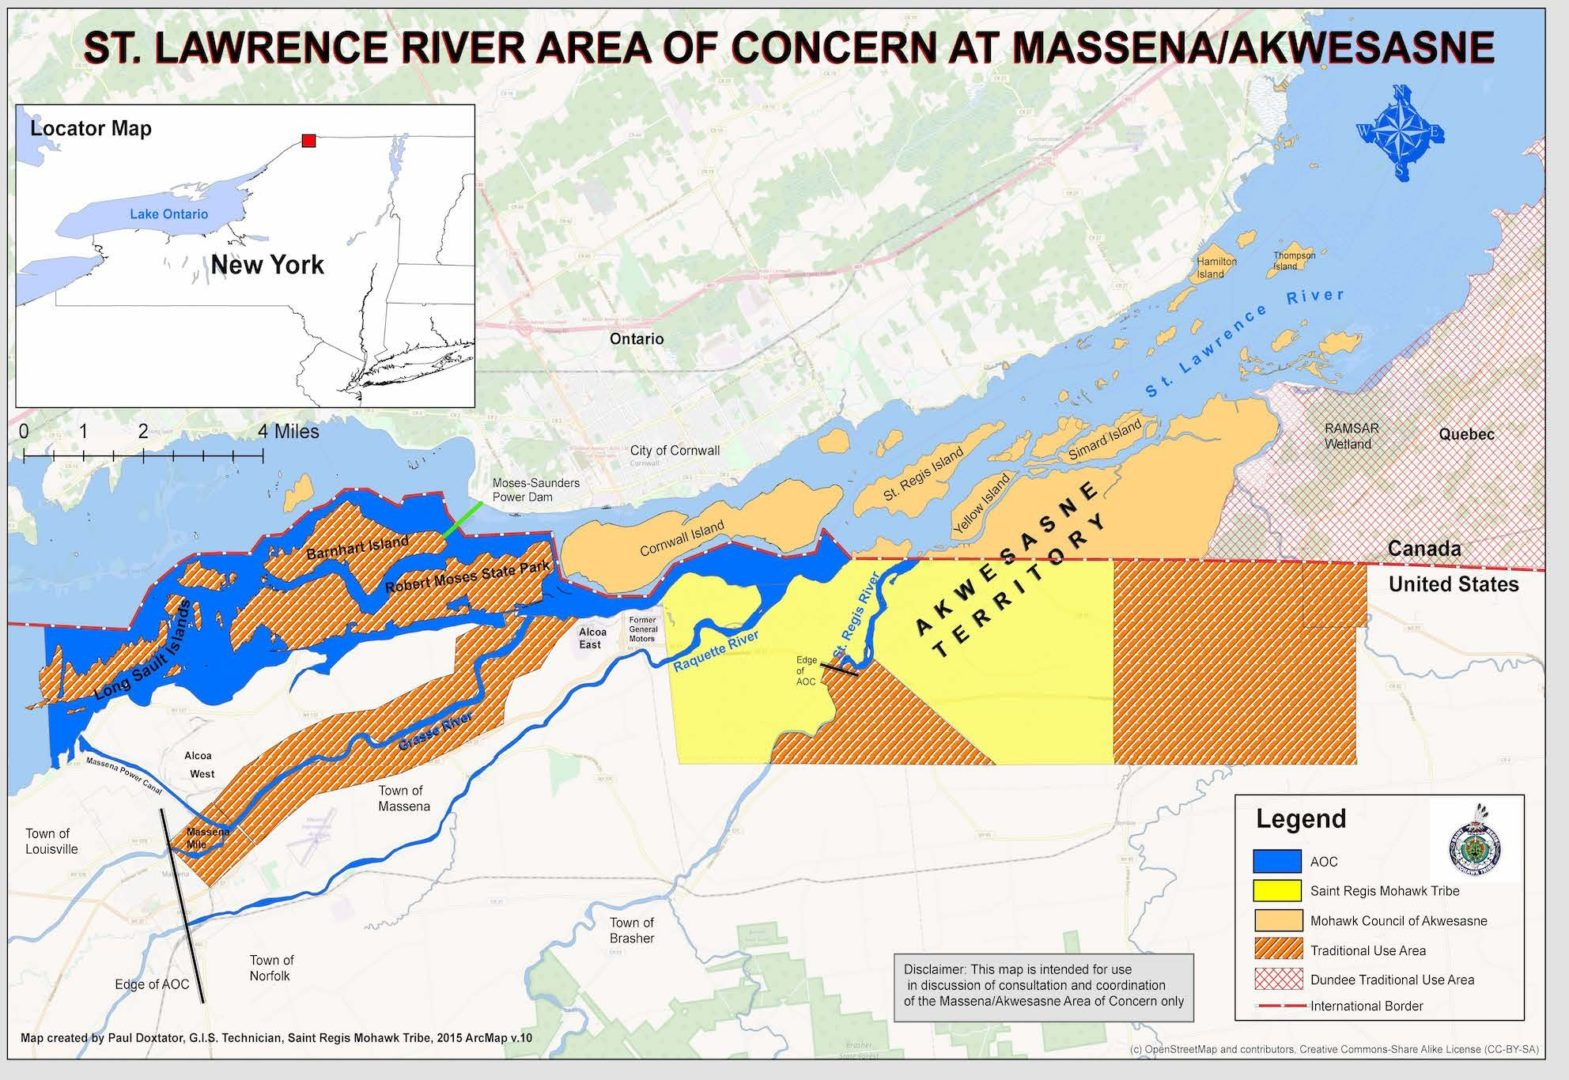 US St. Lawrence River Area of Concern